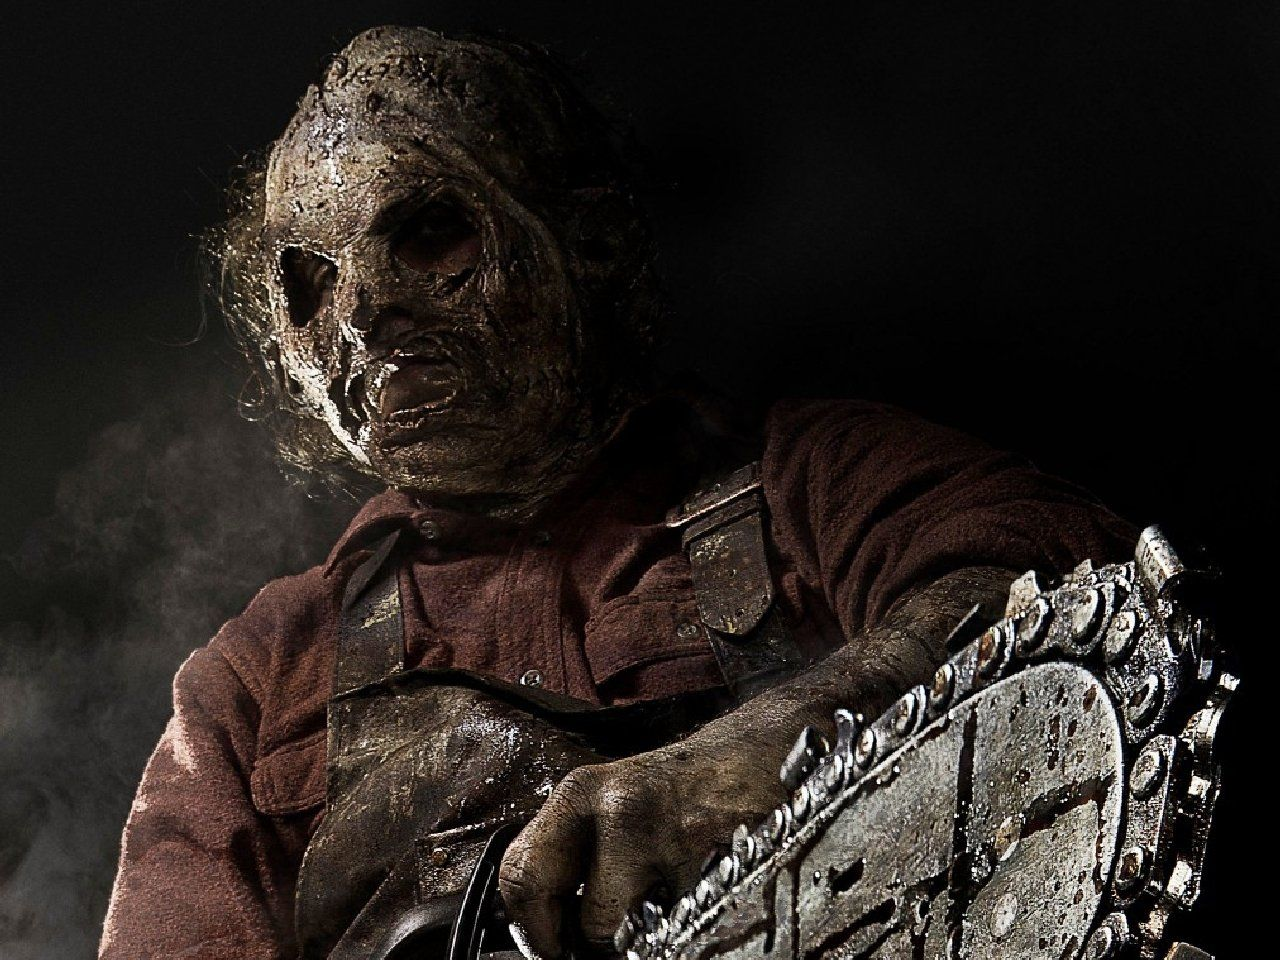 texas chainsaw d hd wallpapers backgrounds wallpaper | hd wallpapers